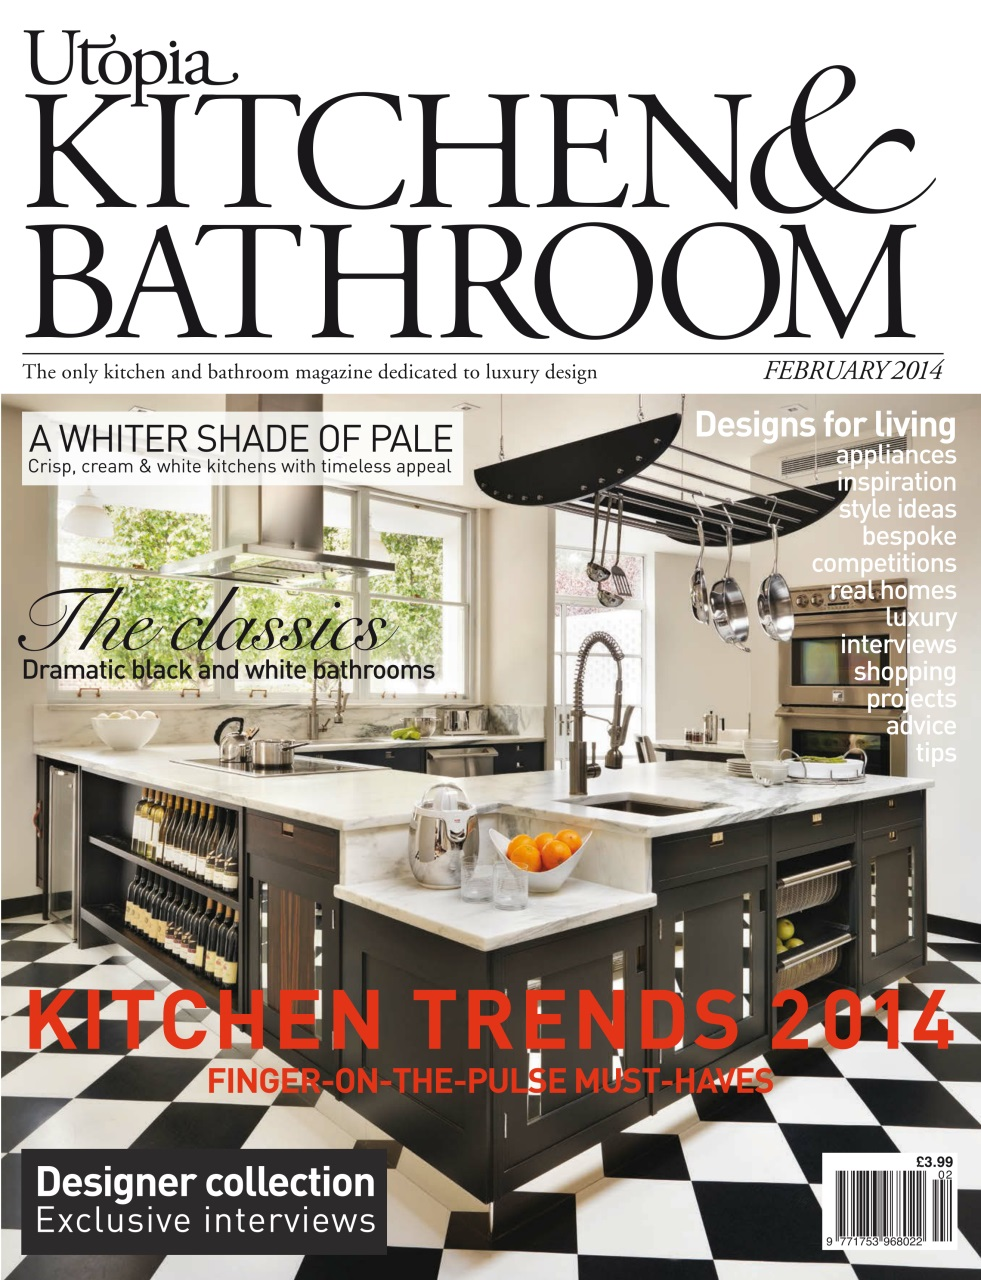 Moving From The Kitchen Into Bathroom Clics On Page 78 Looks At New Creative Ways Black And White Work Their Magic In